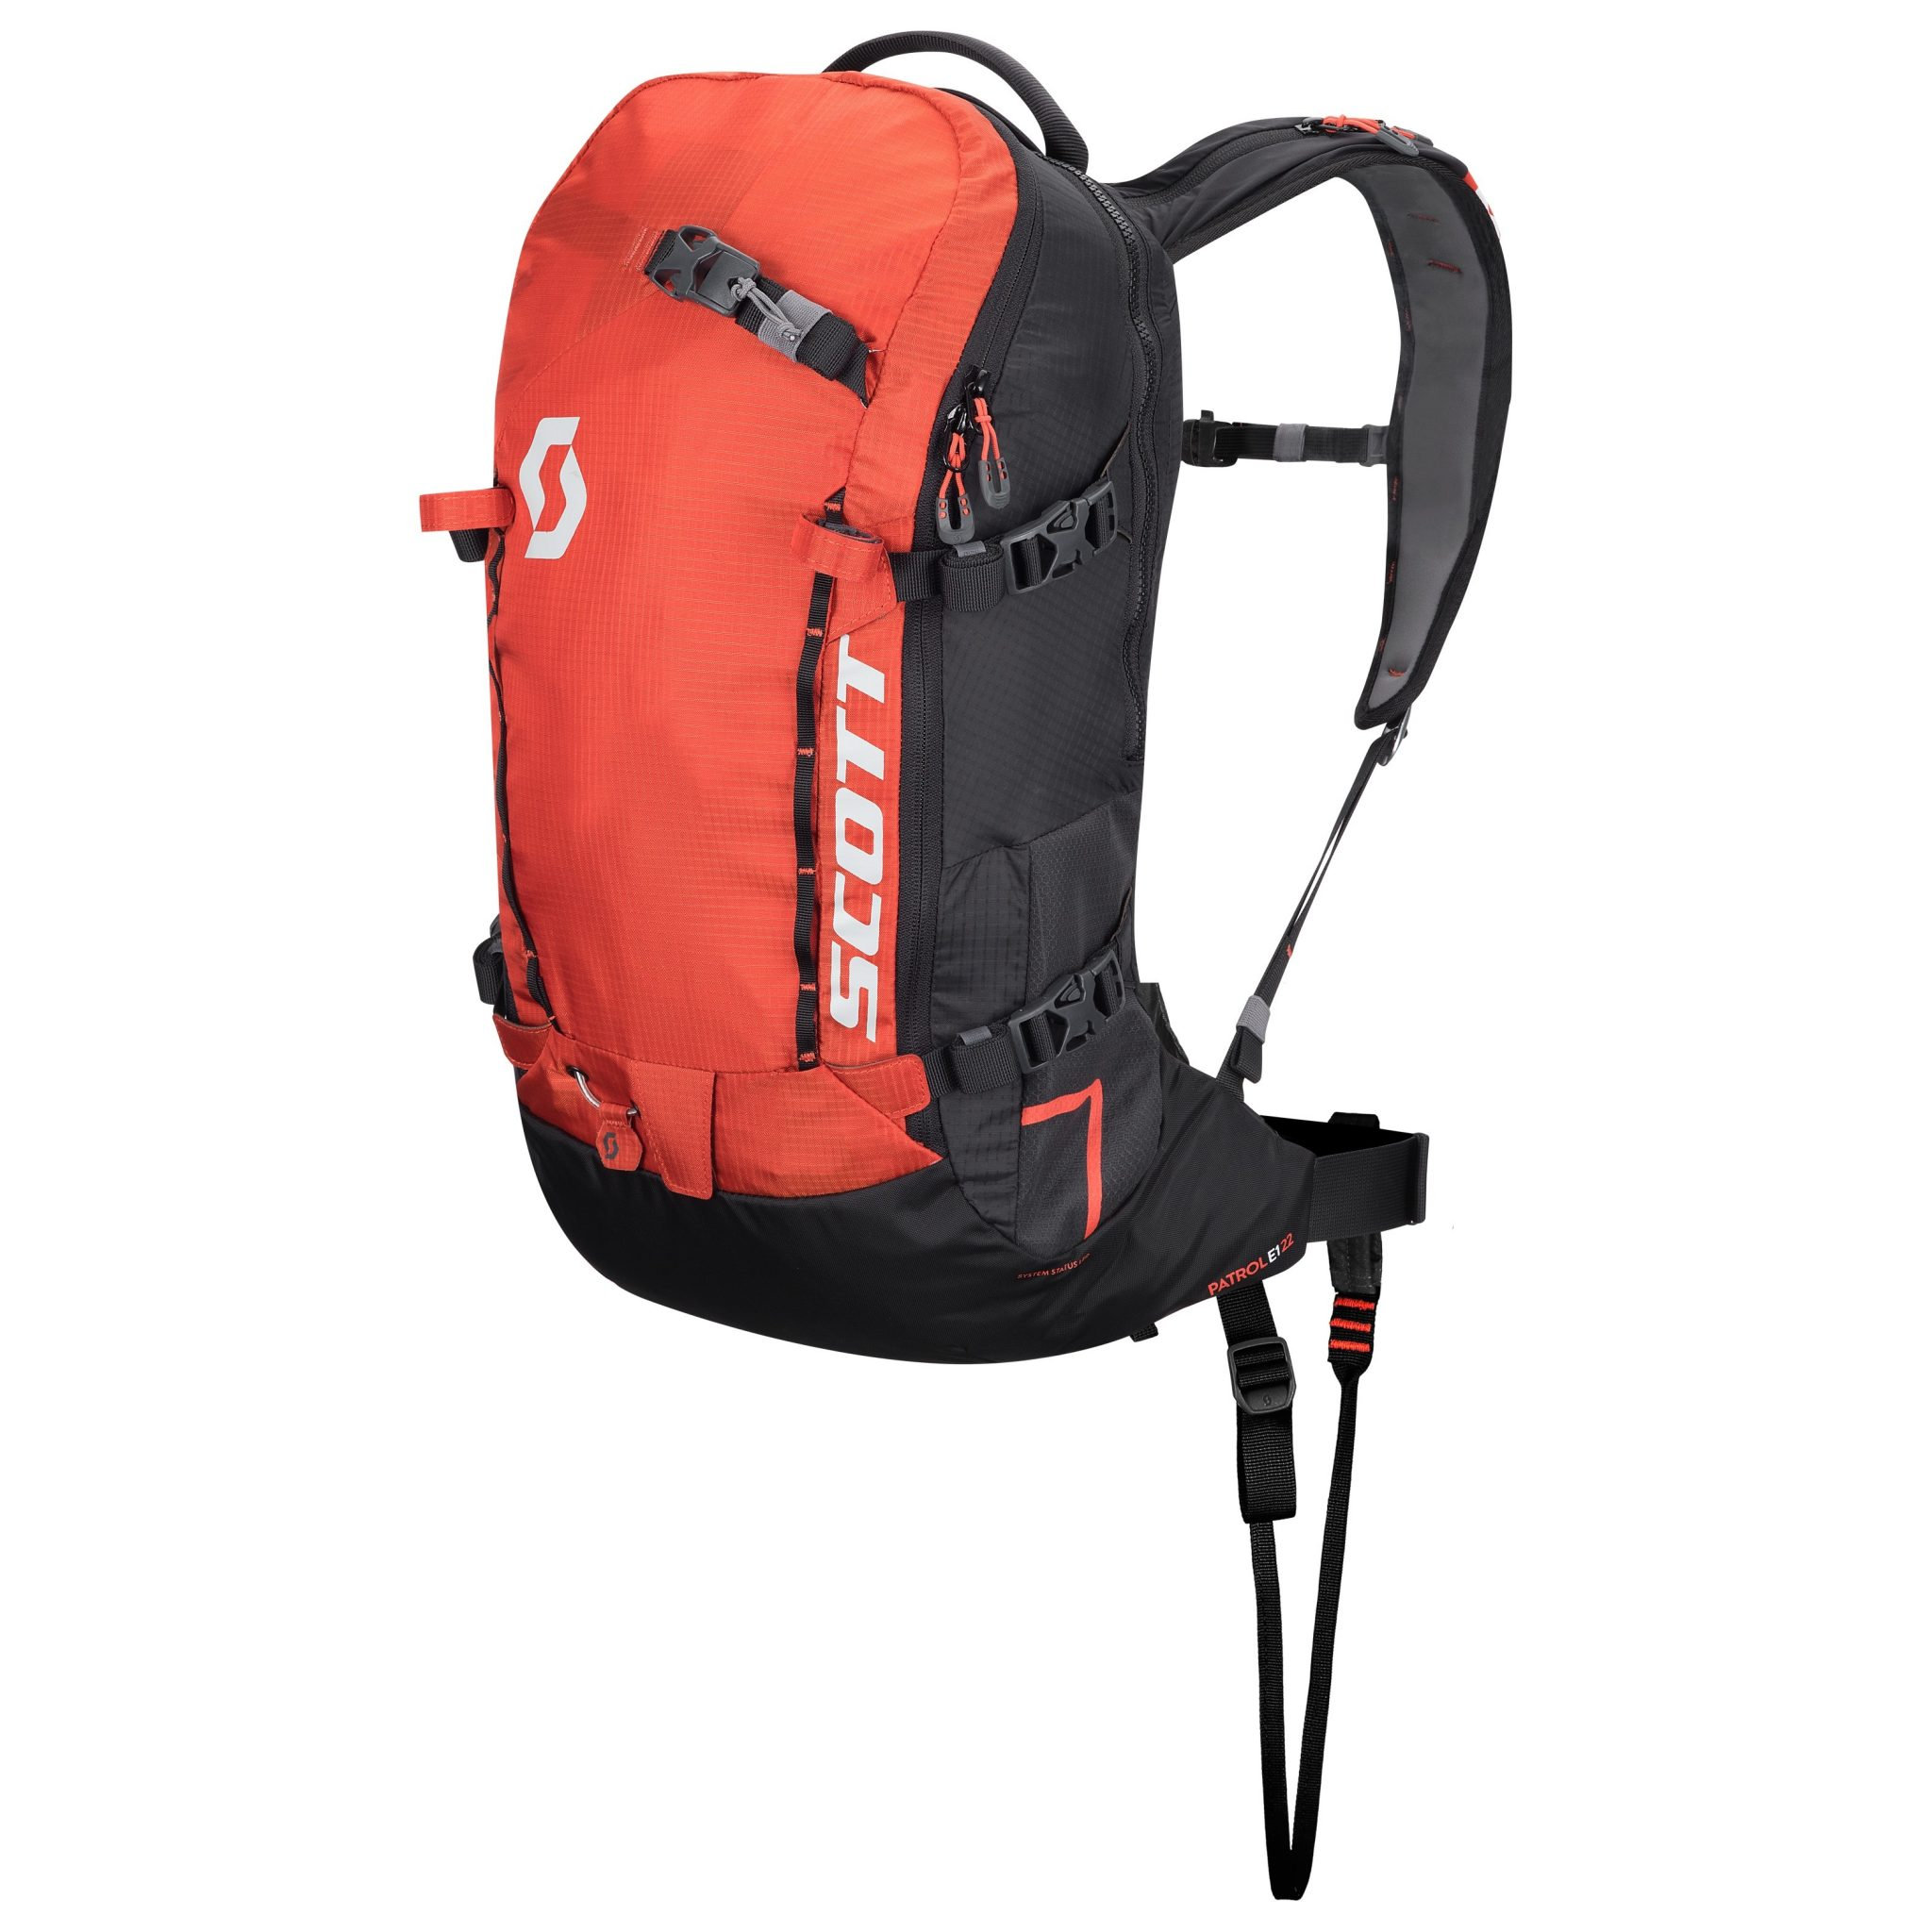 Scott Backcountry Patrol E1 22 Backpack - Front View